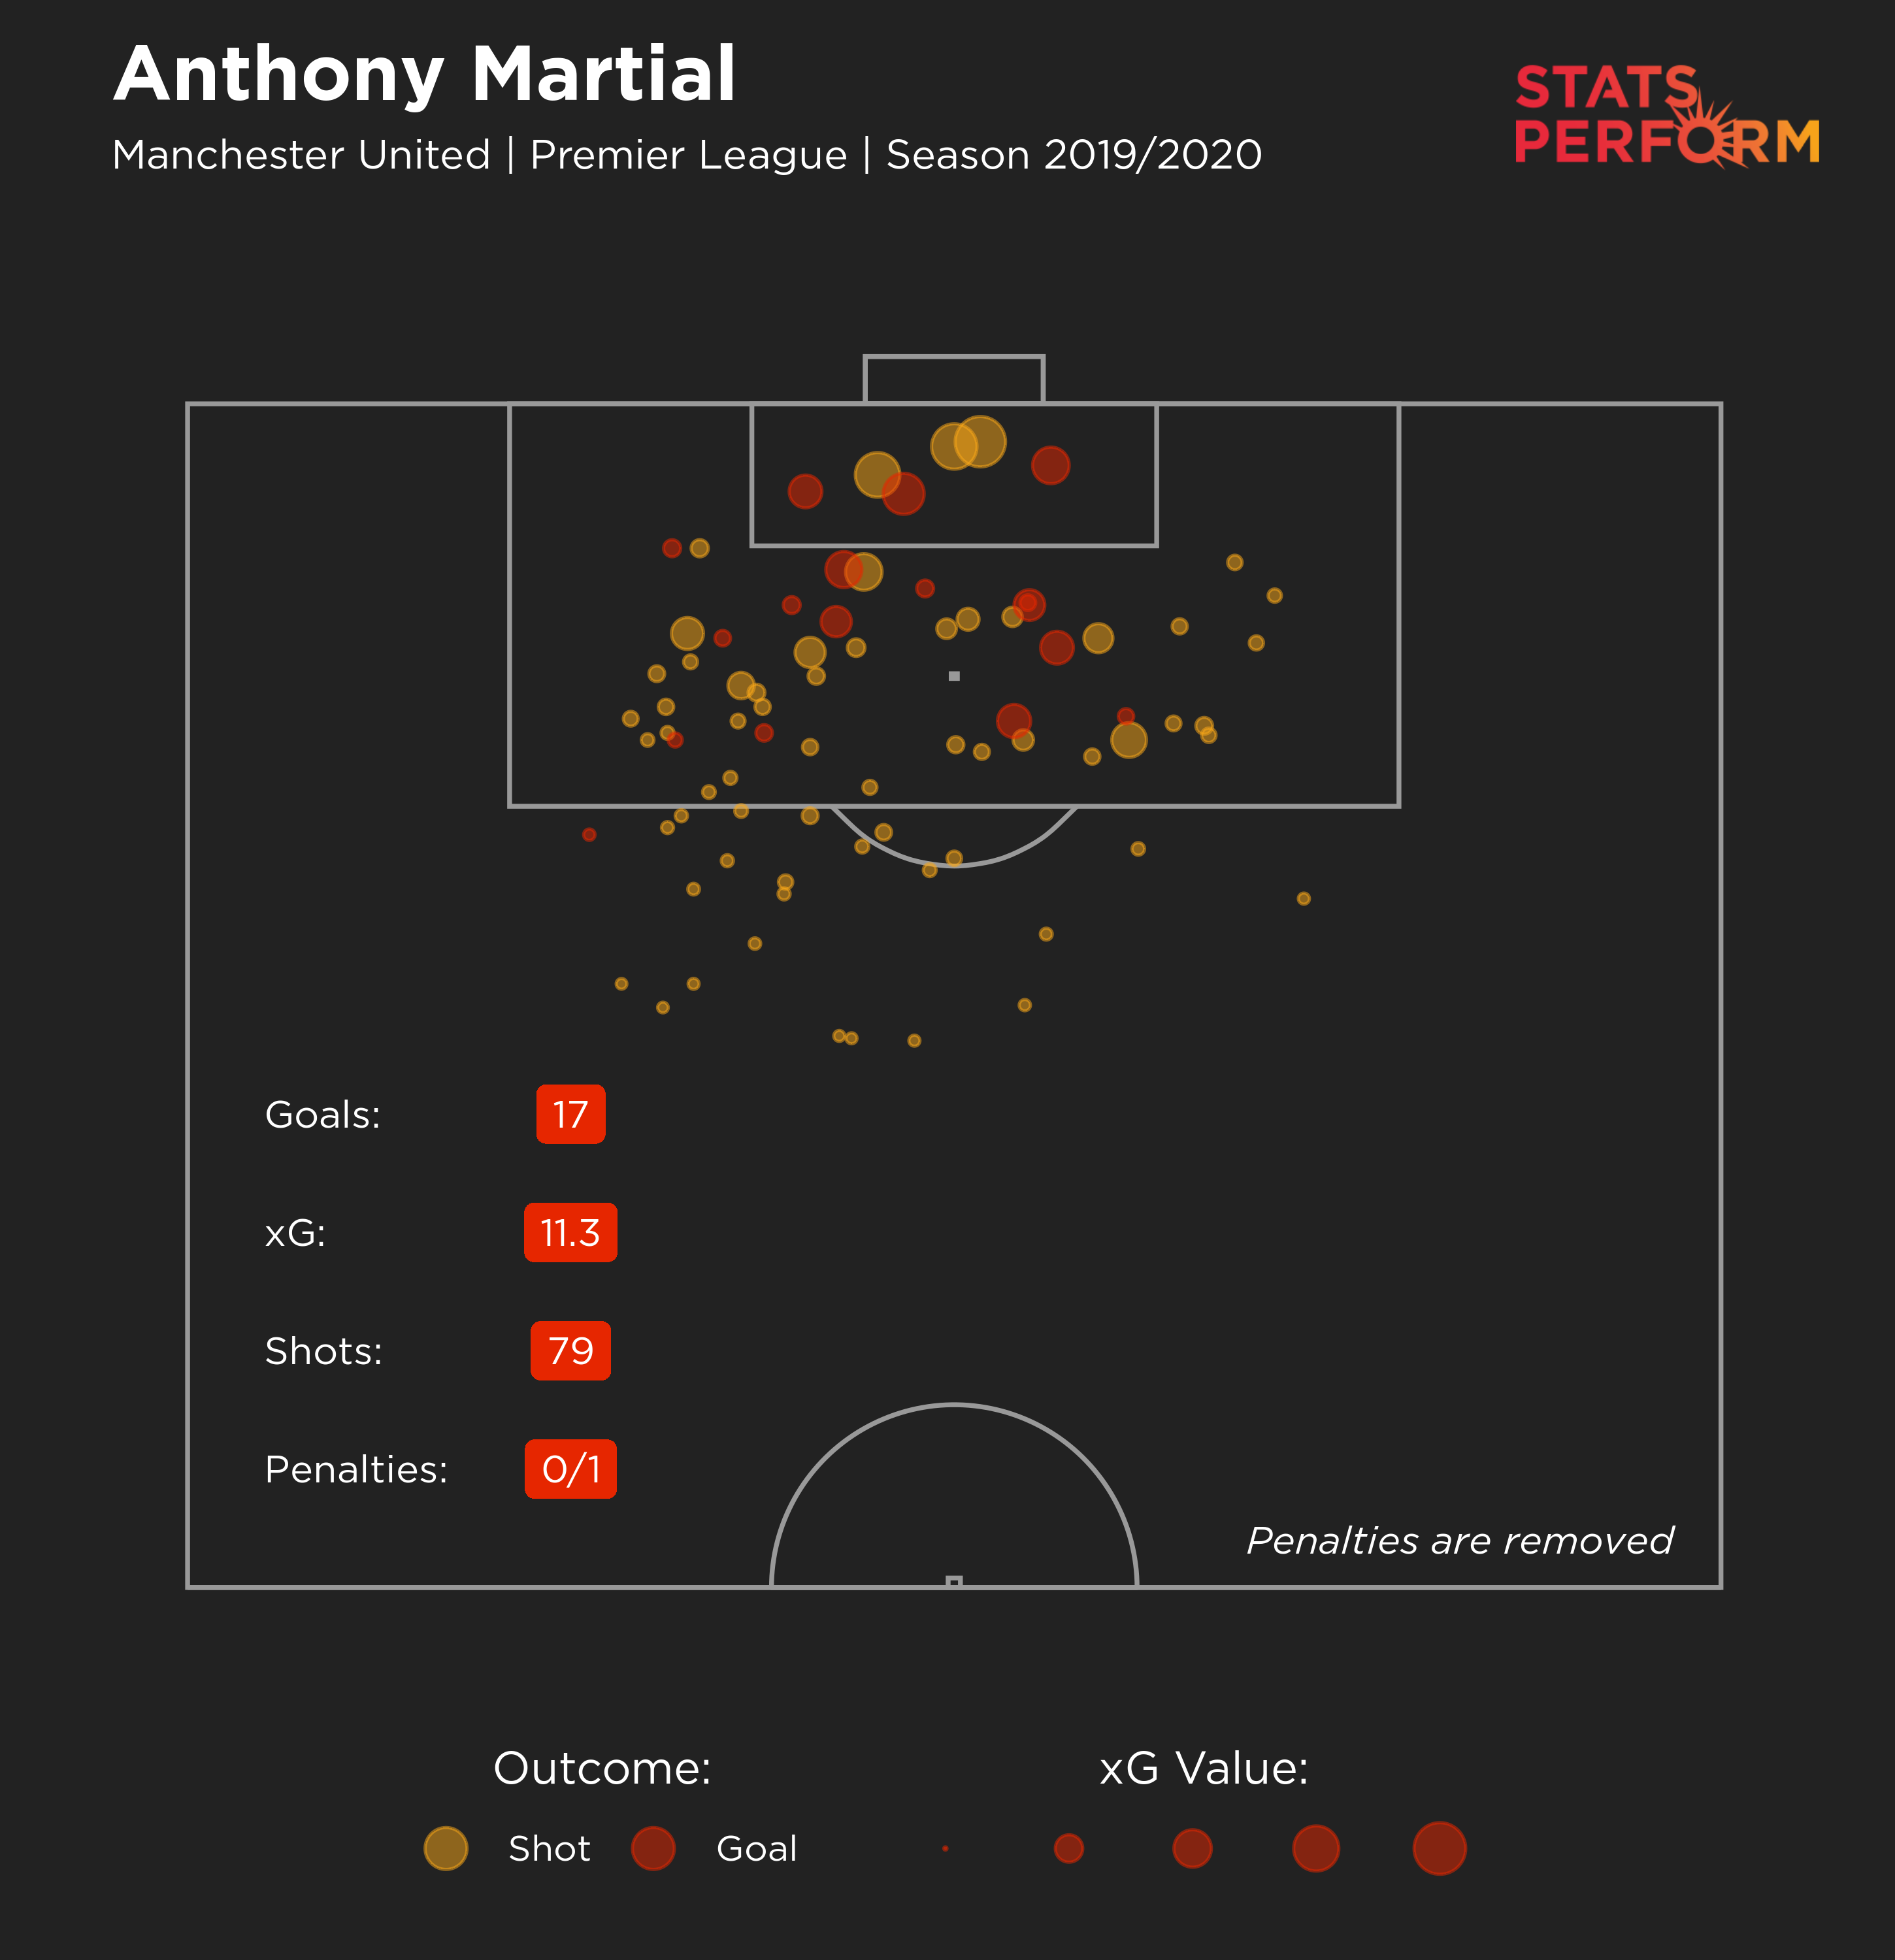 Anthony Martial's xG maps for 2019-20